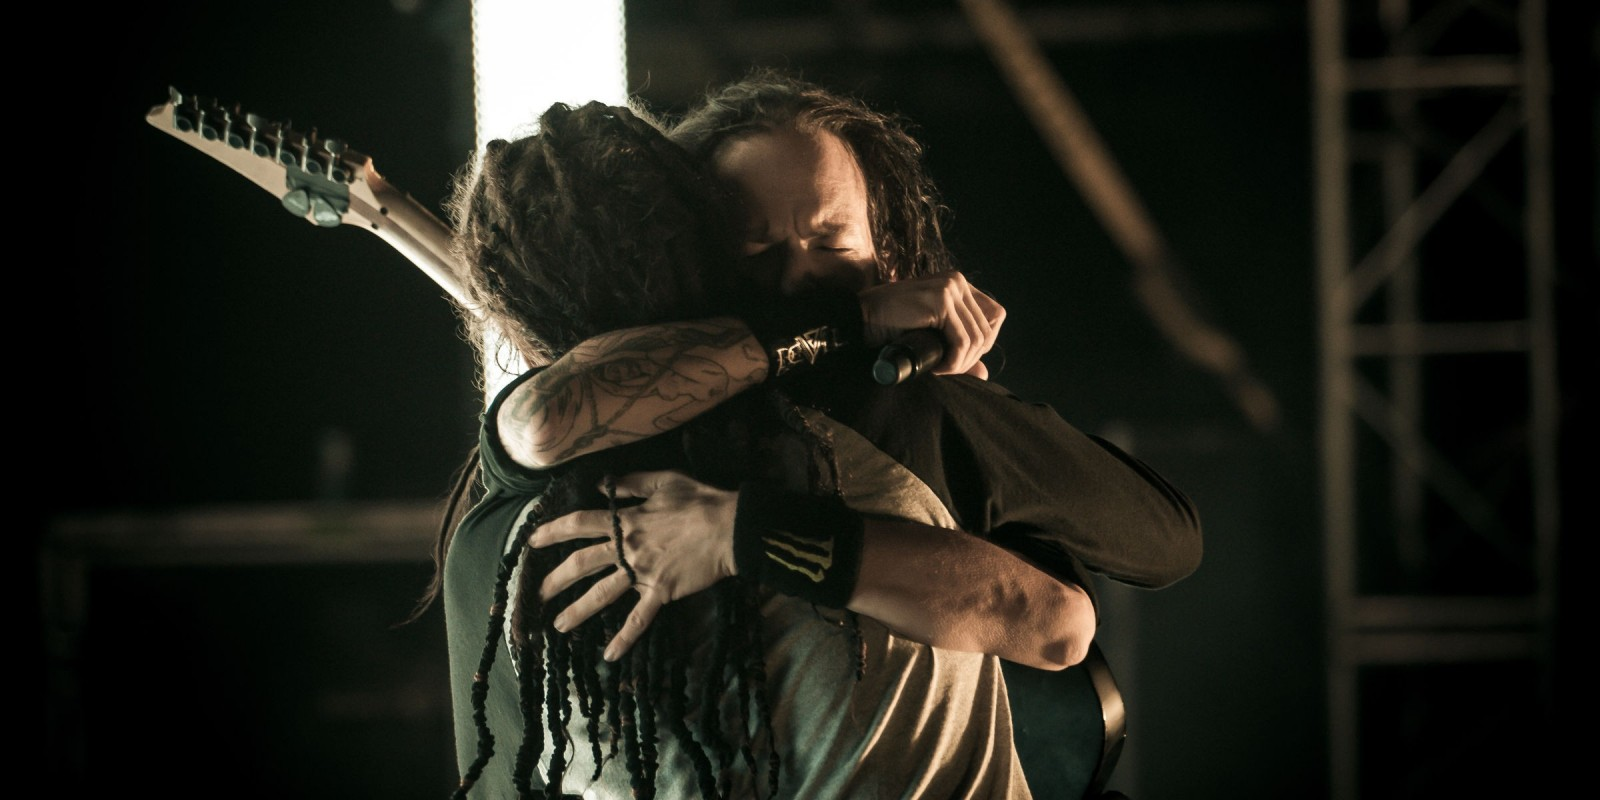 """Jonathan Davis and Brian """"Head"""" Welch from Korn reuniting on stage for the first time in years at 2012 Carolina Rebellion"""